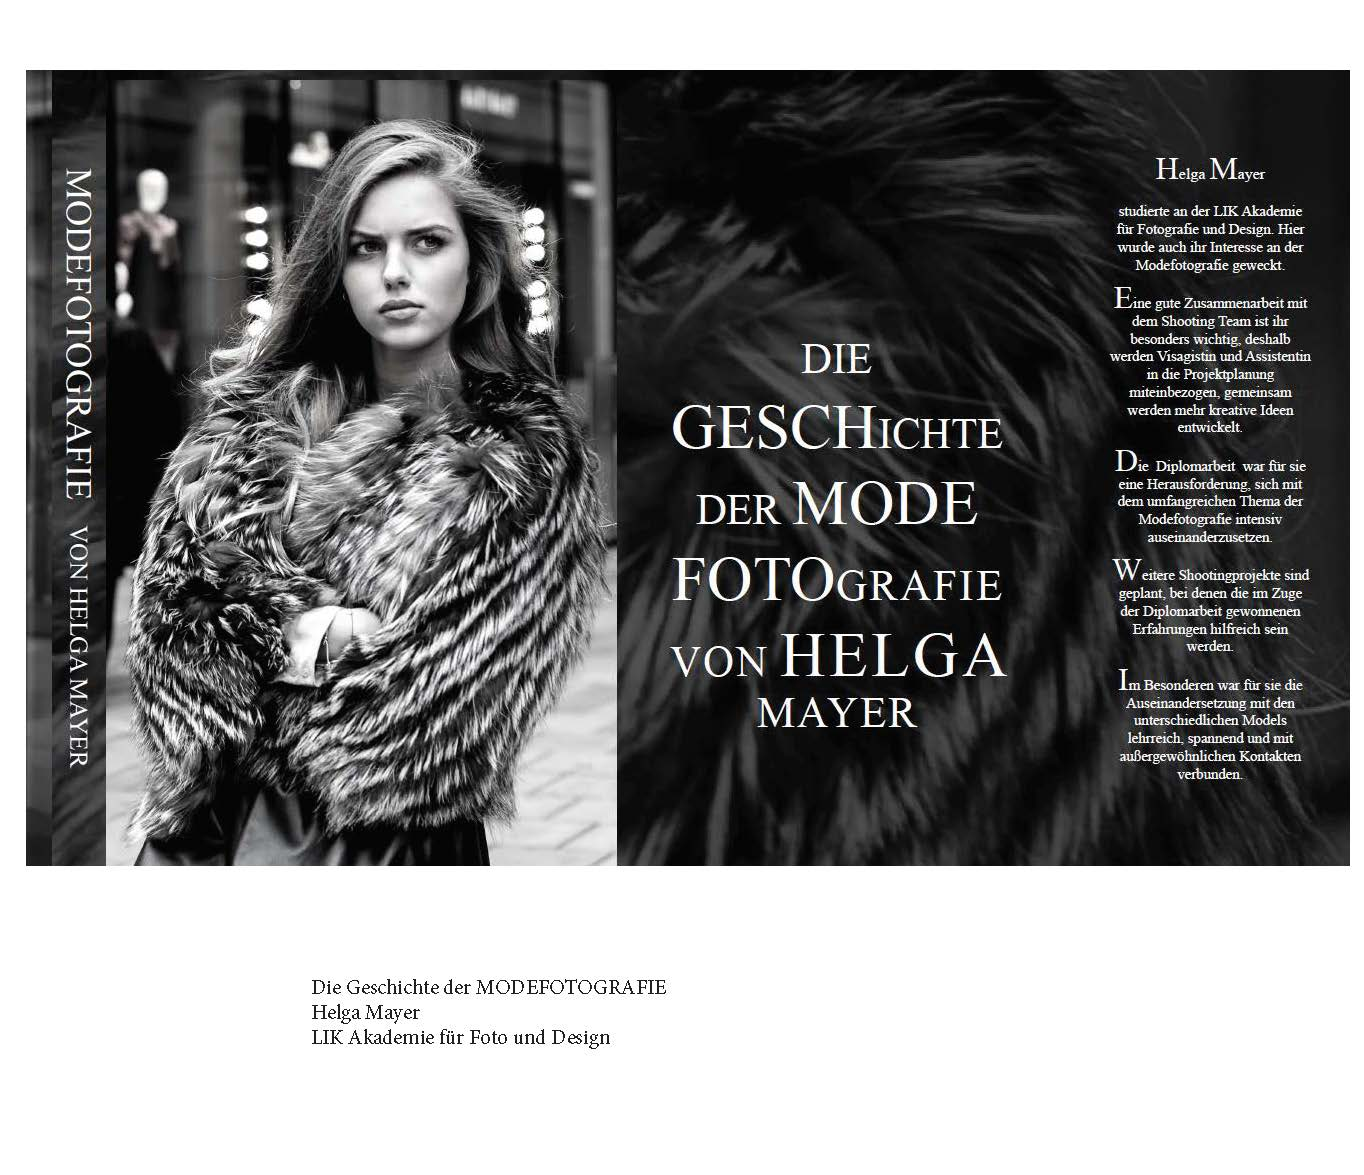 All Rights reserved: Helga Mayer